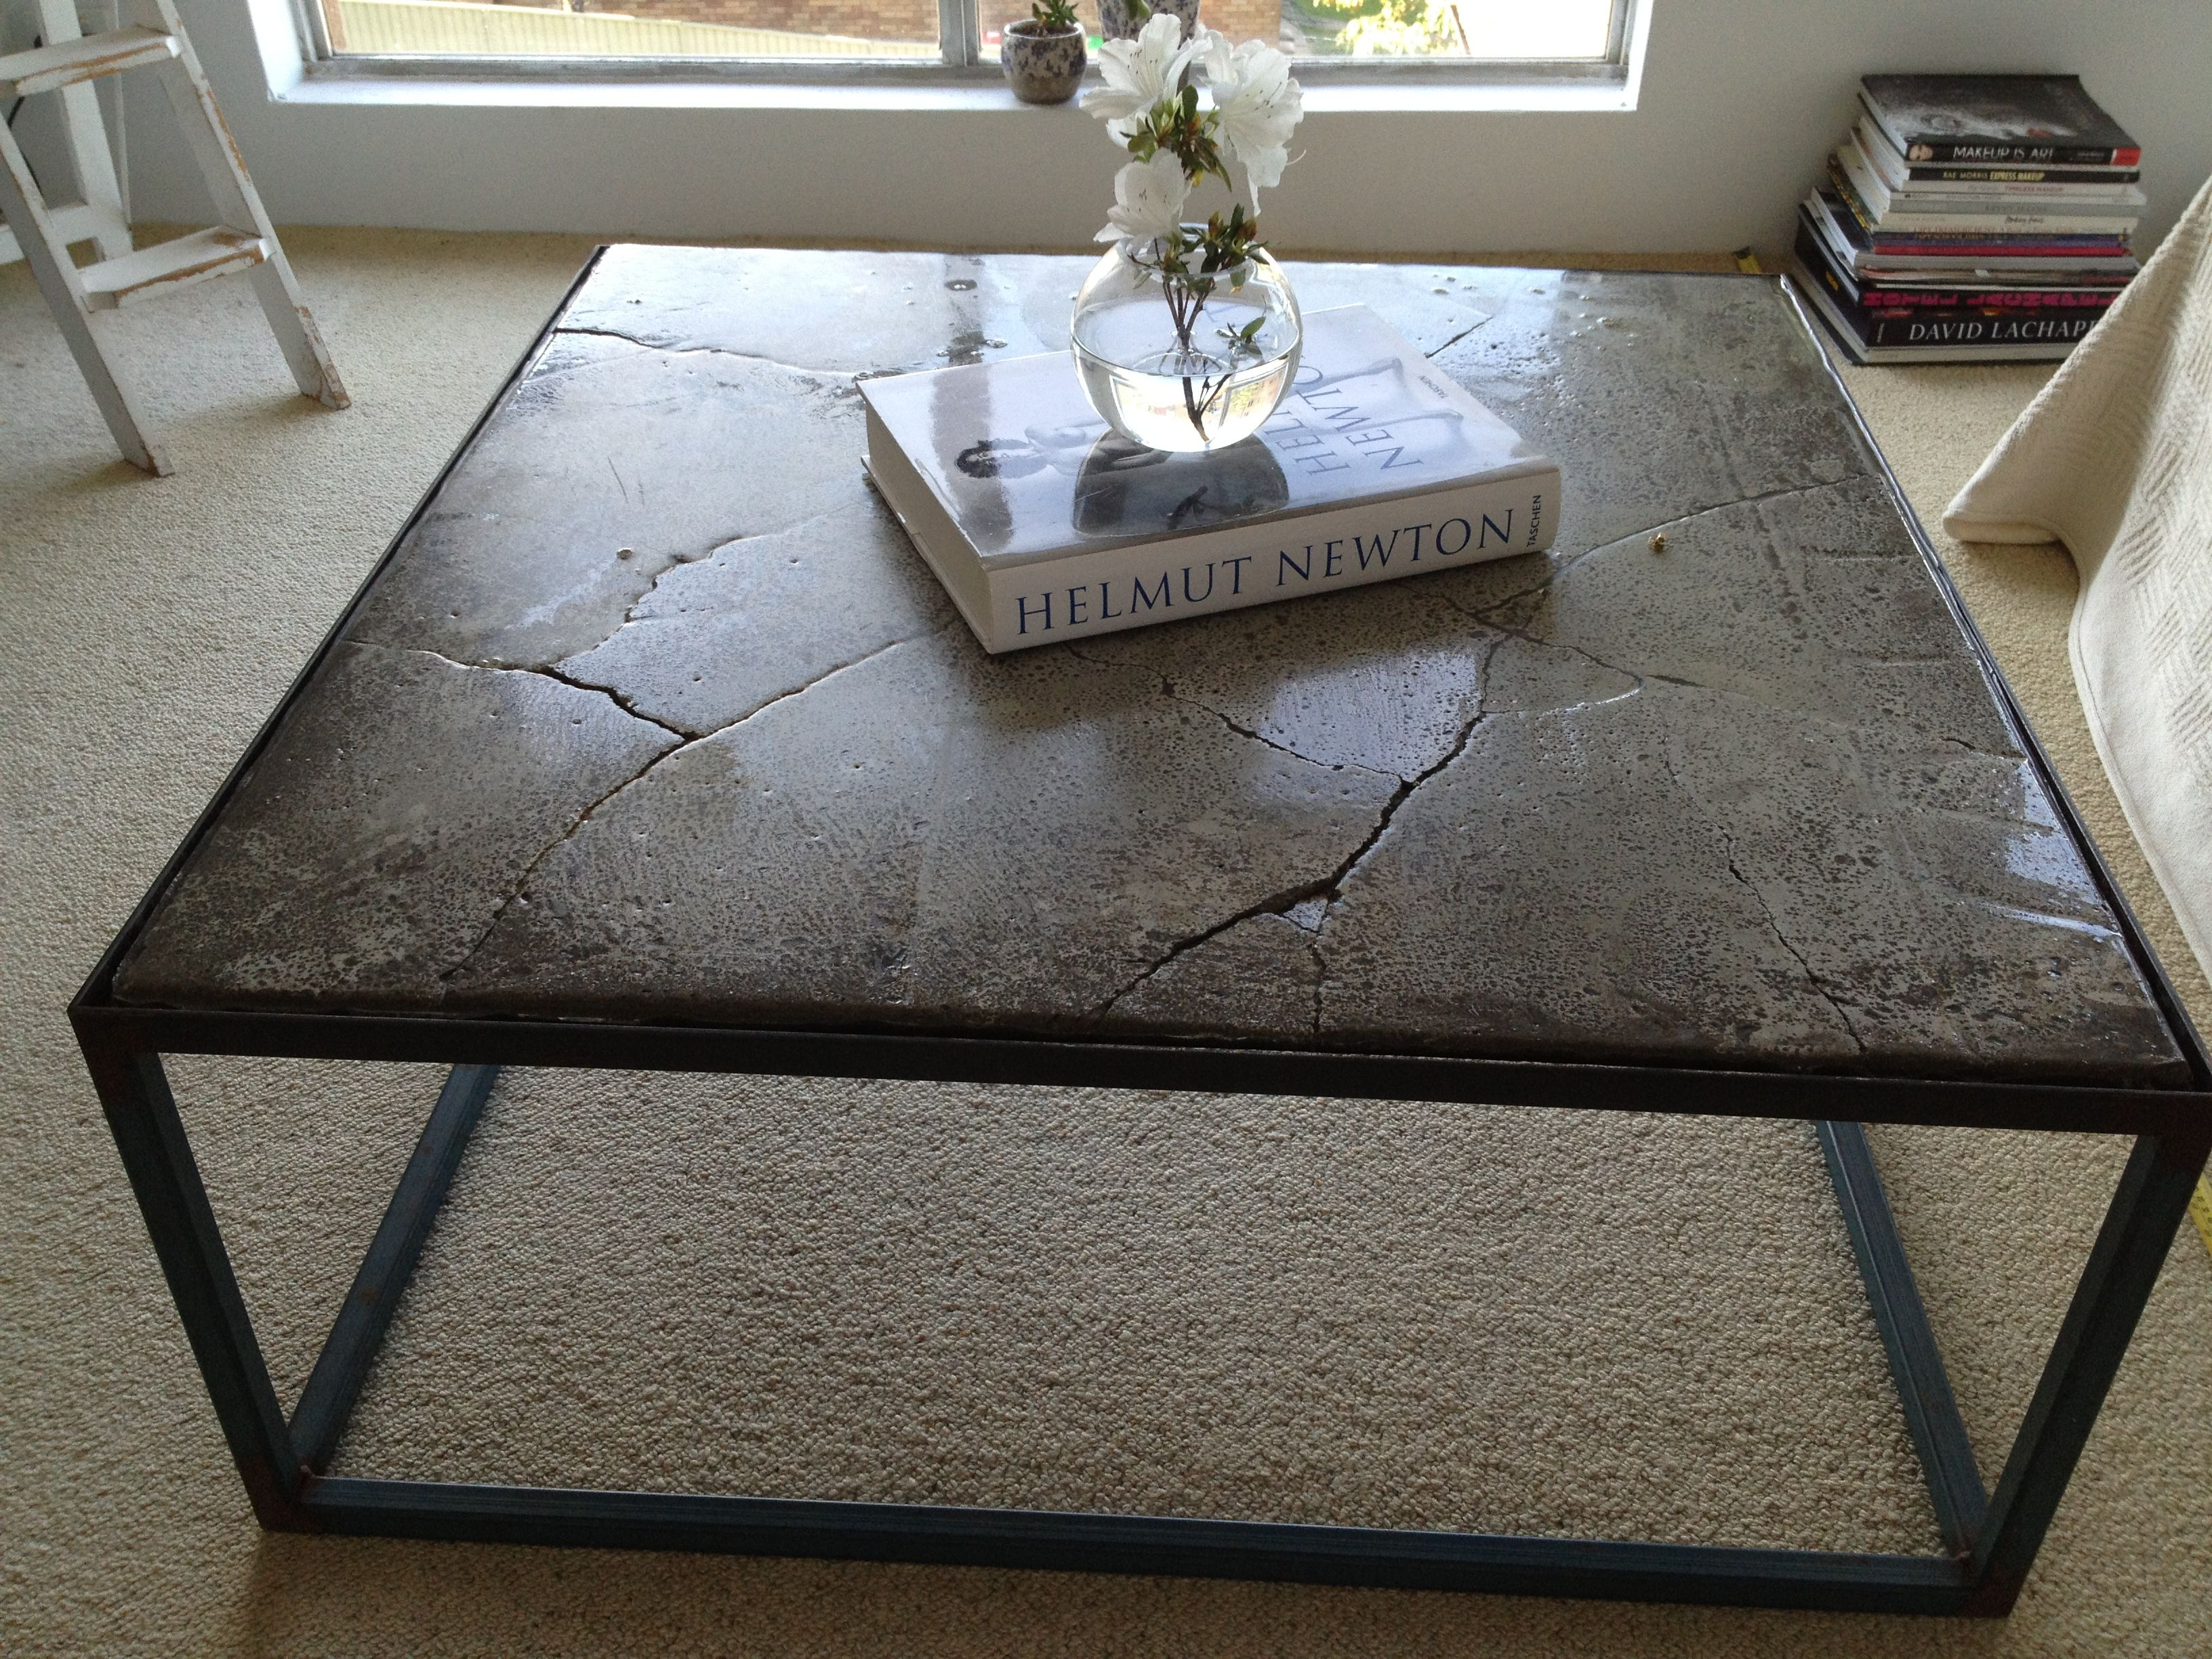 Cracked concrete resin filled coffee table just moved into our